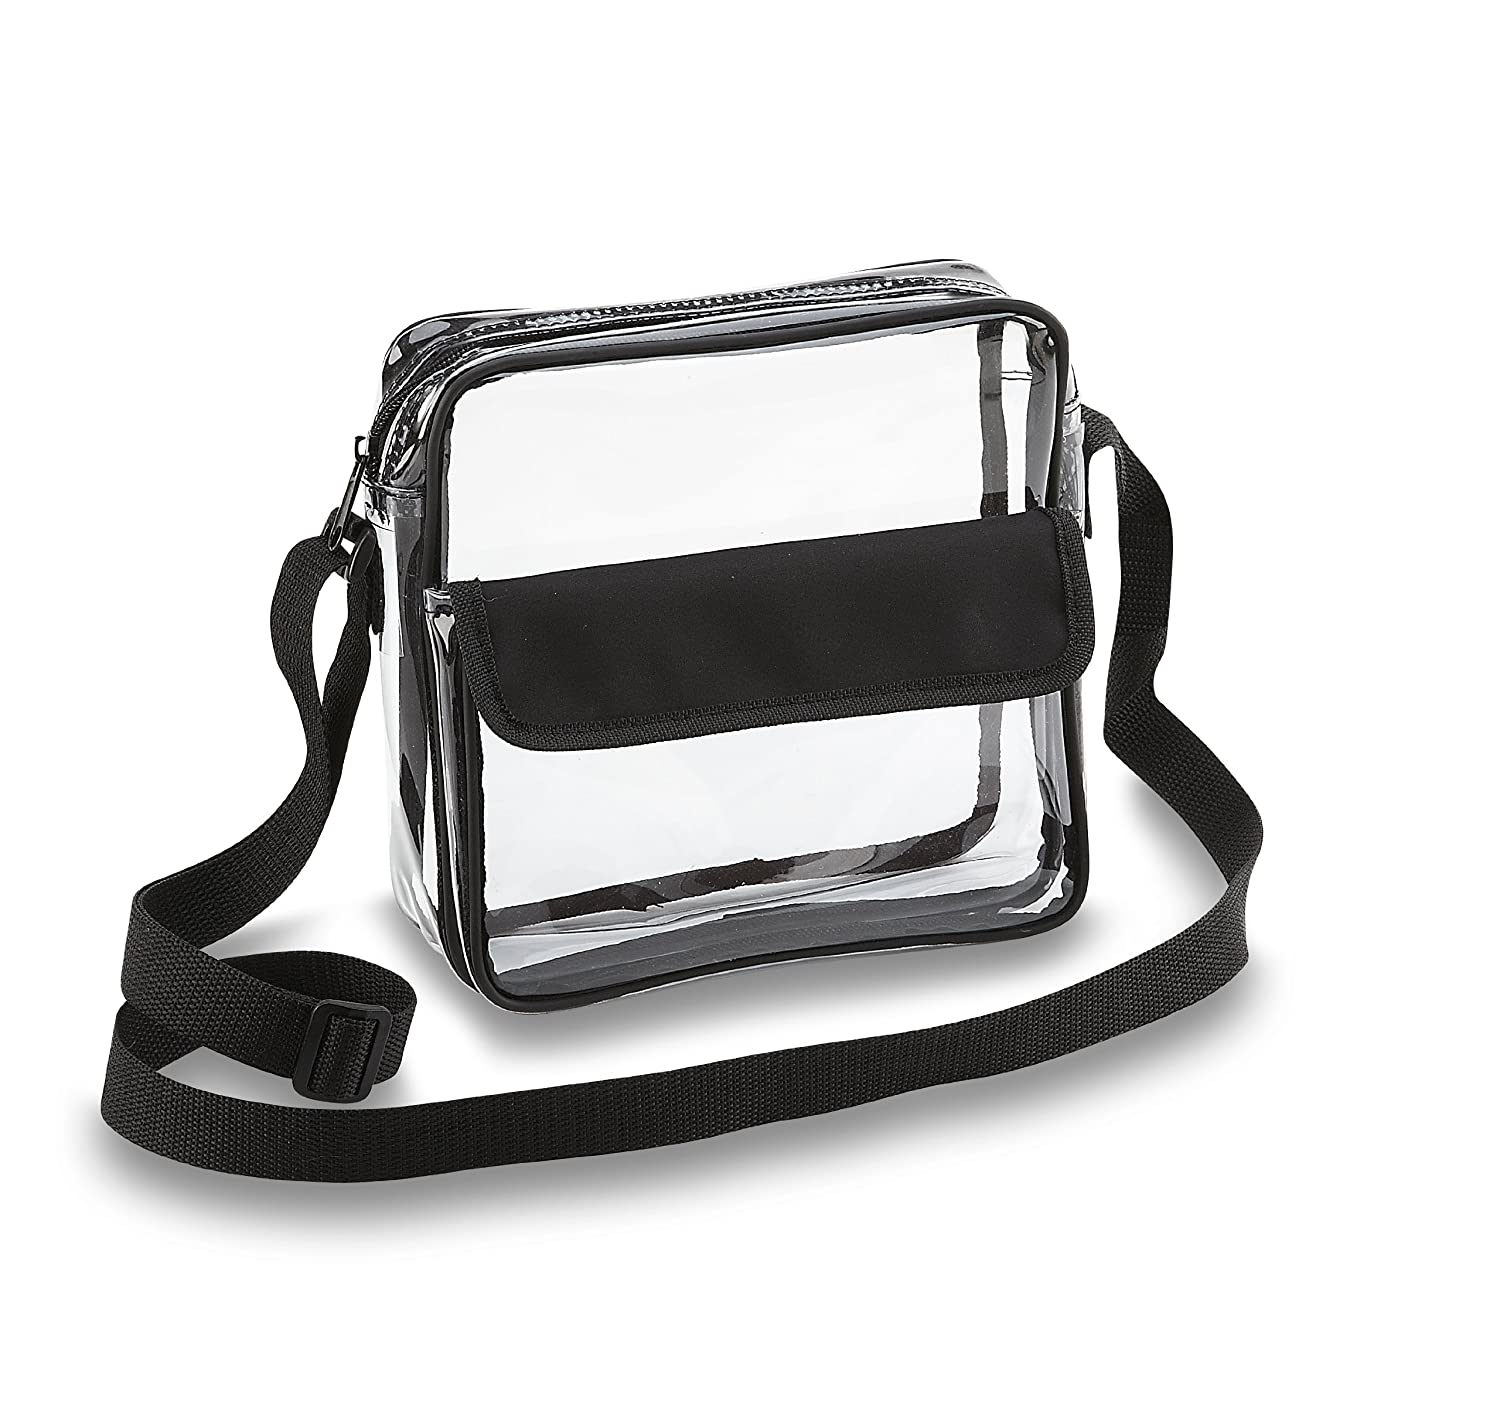 Clear Pvc Shoulder Bag 38